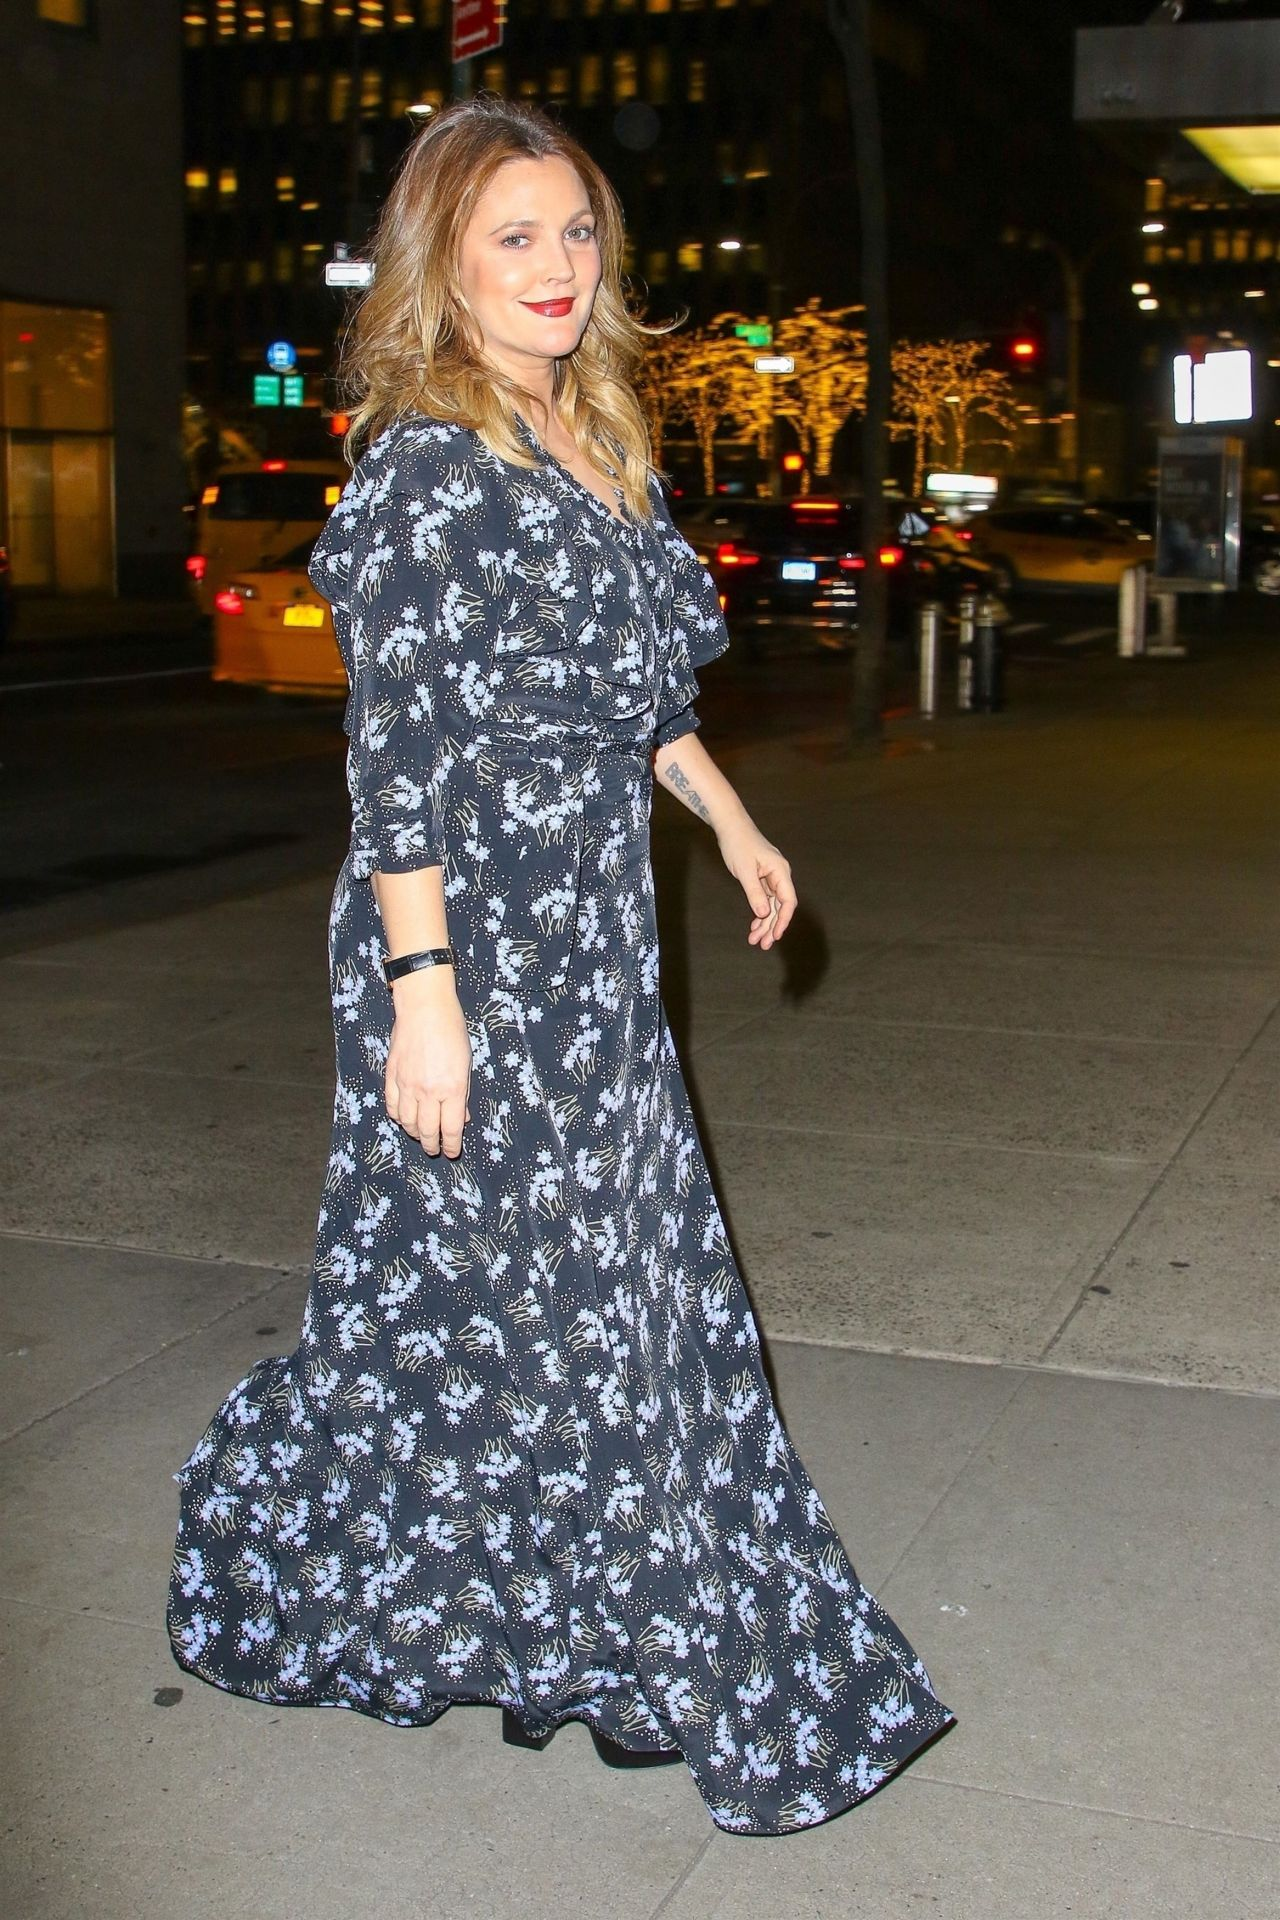 Drew Barrymore Shopping In NYC 01152019